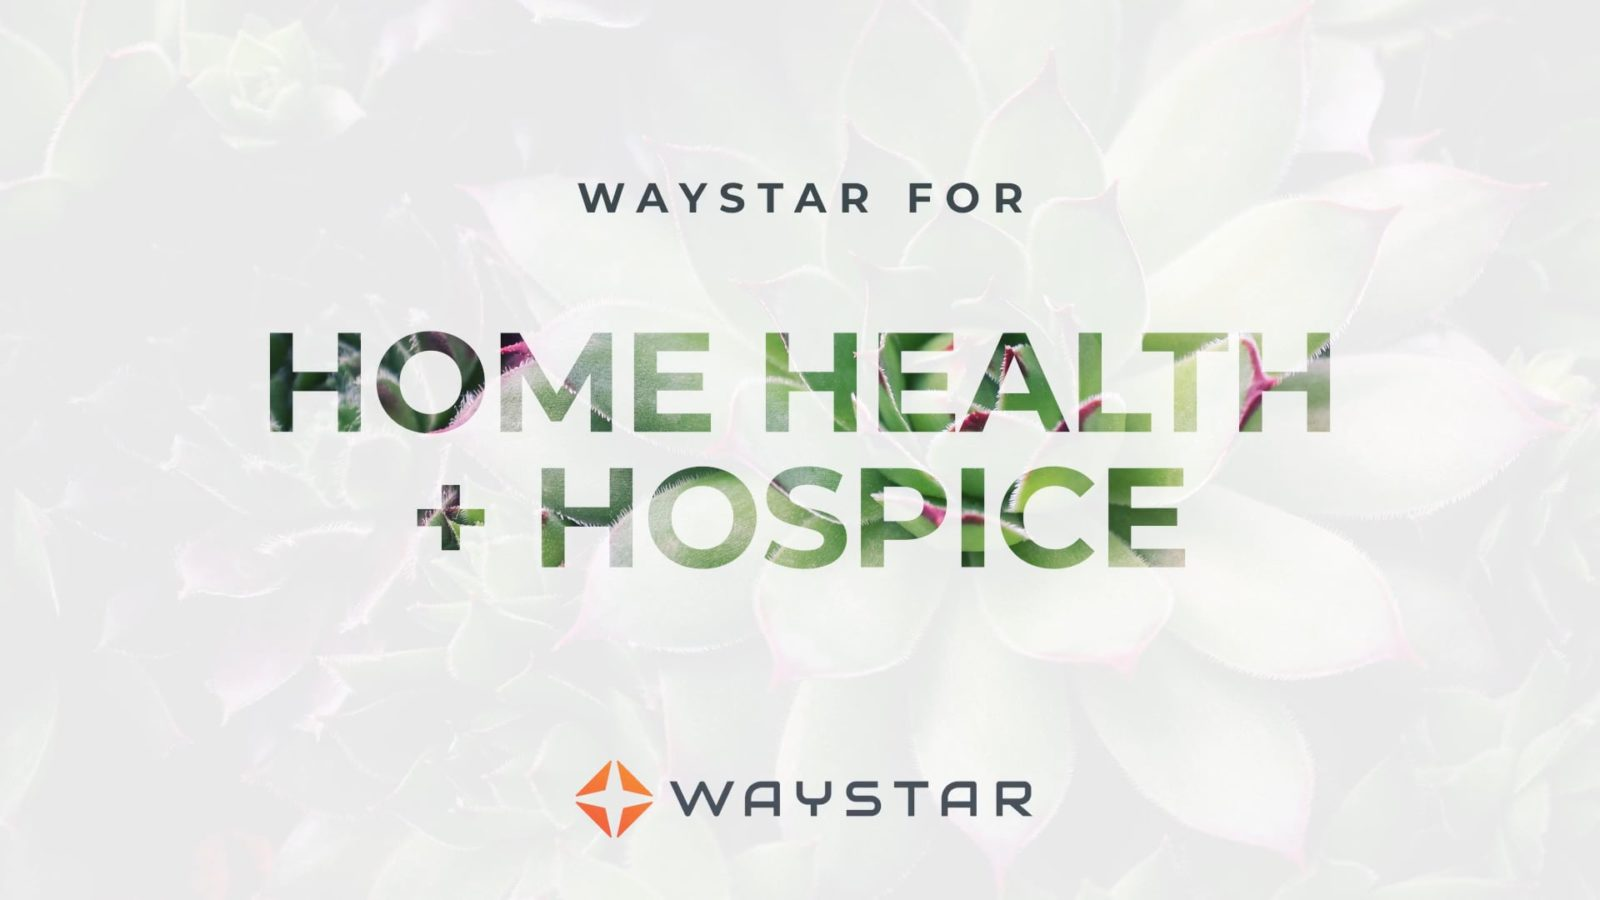 Waystar for Home Health + Hospice